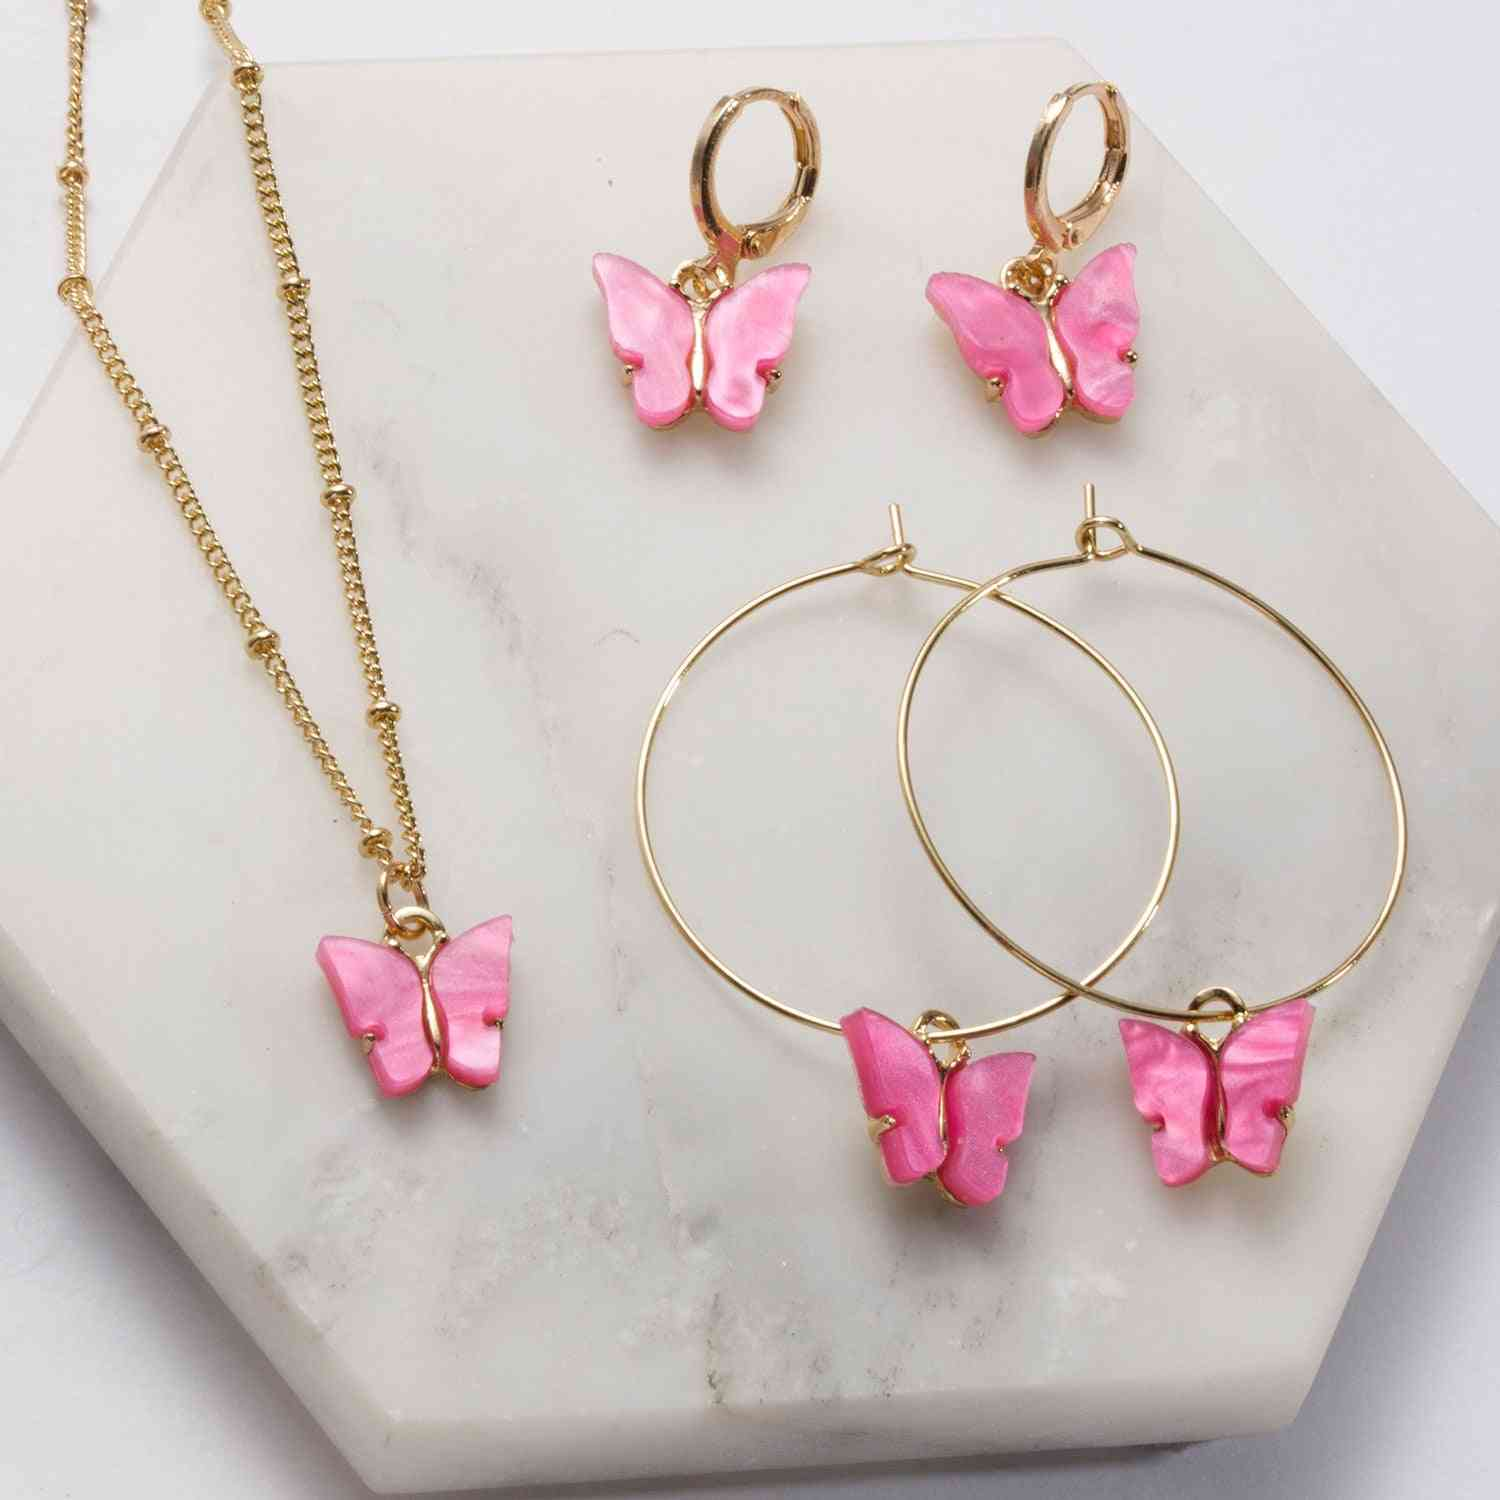 Acrylic Butterfly Pendant Earrings, Necklace Combination Set, Alloy Chain Jewelry Sets